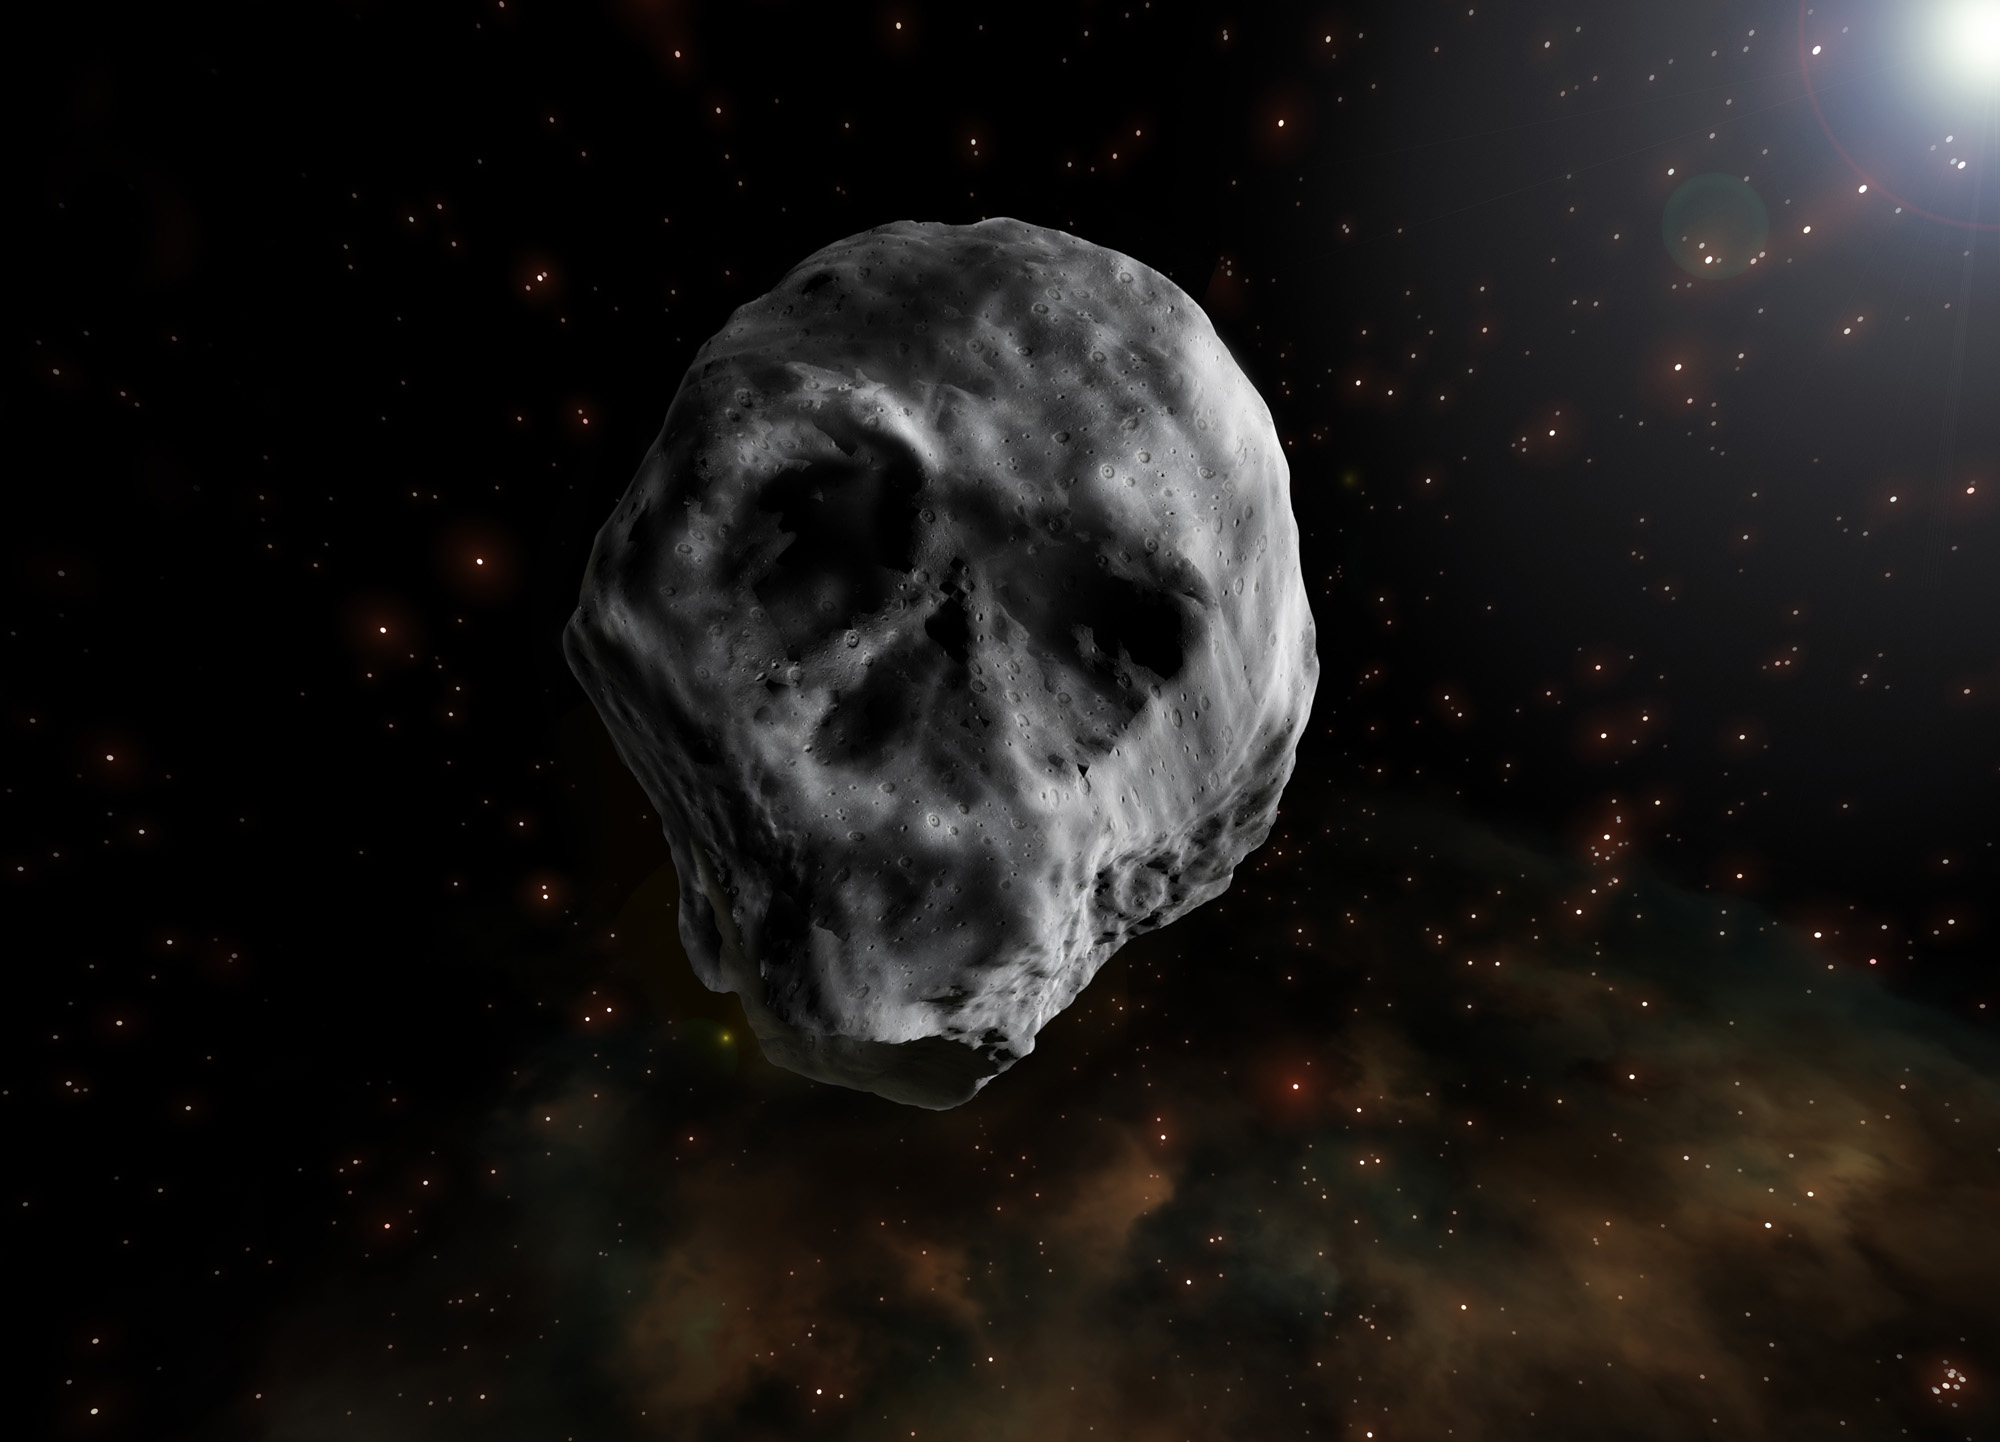 Halloween Asteroid Returning In 2020 Haunted Again: Skull Faced 'Halloween Asteroid' Returns in 2018